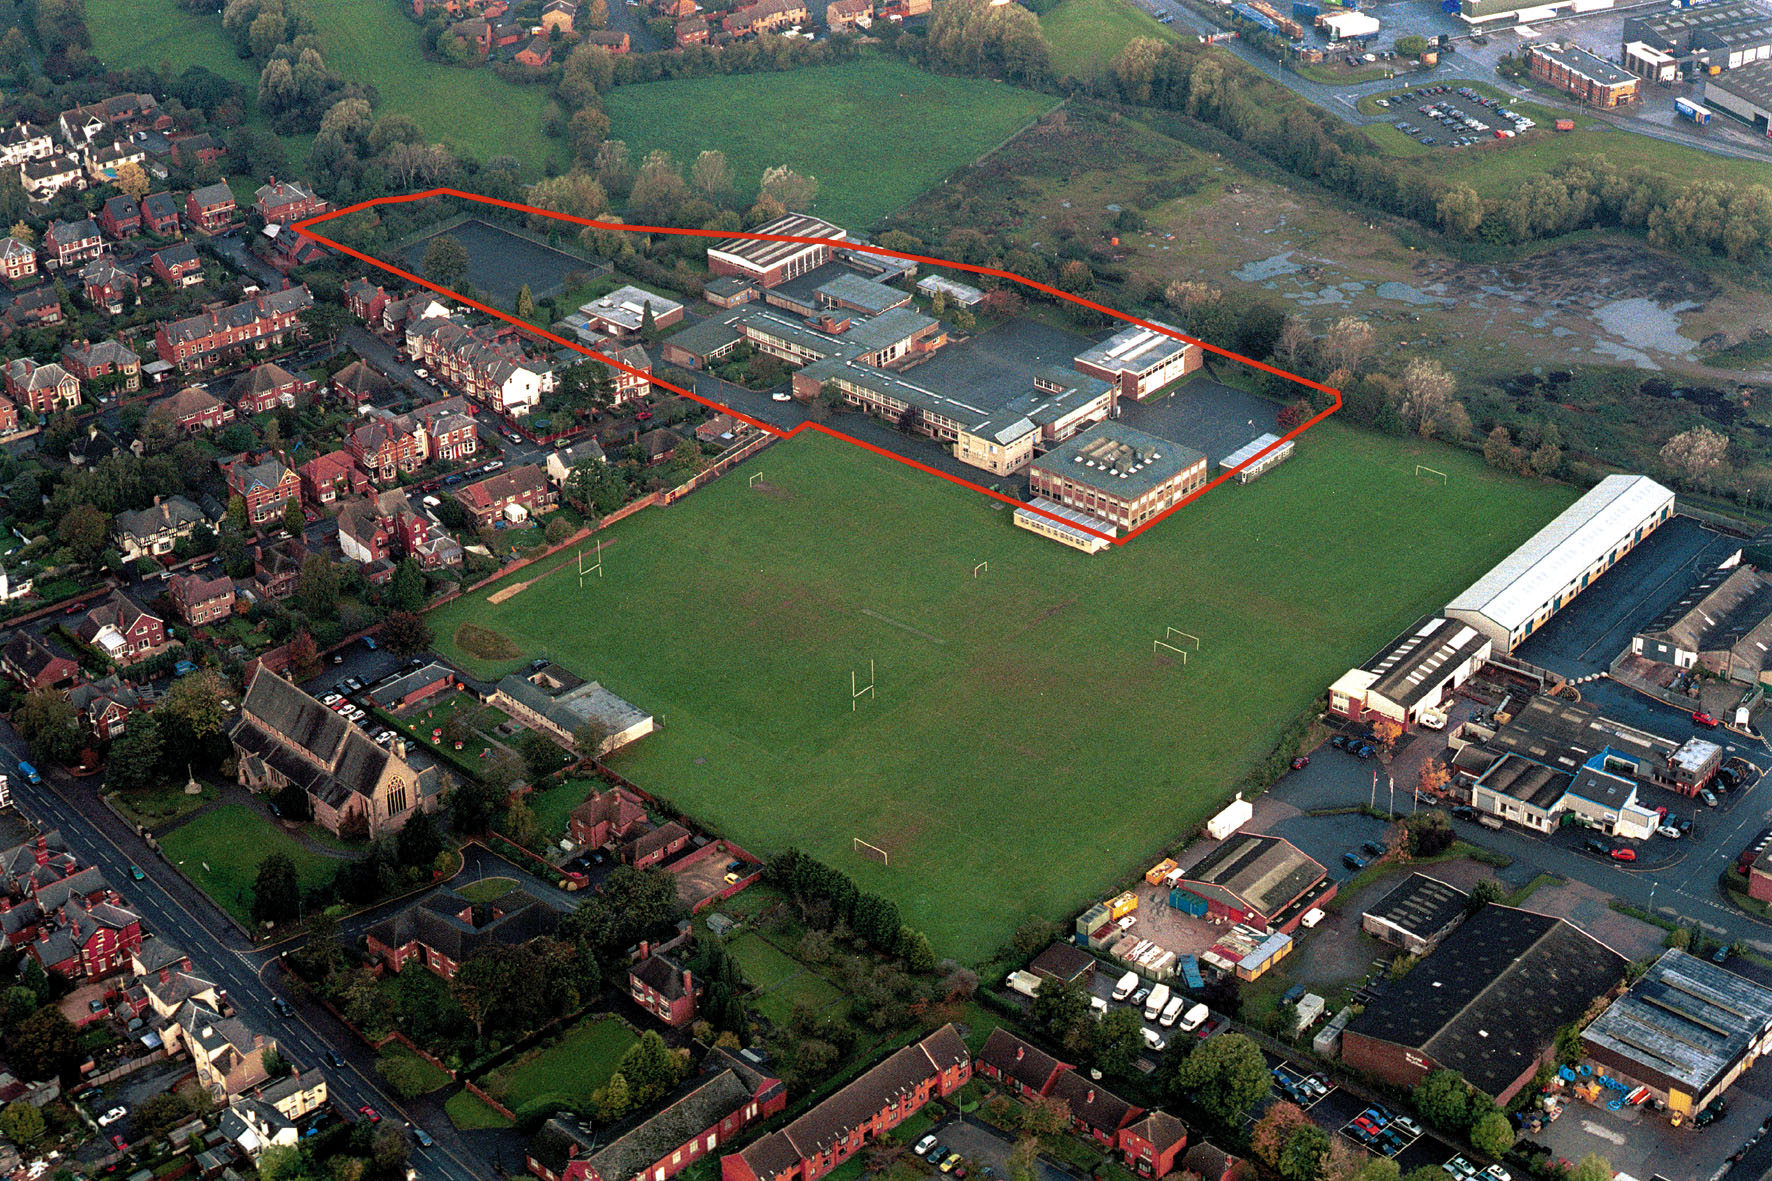 Former site of Hereford's Whitecross High School - sale of the site was supposed to ease contract costs of the new school